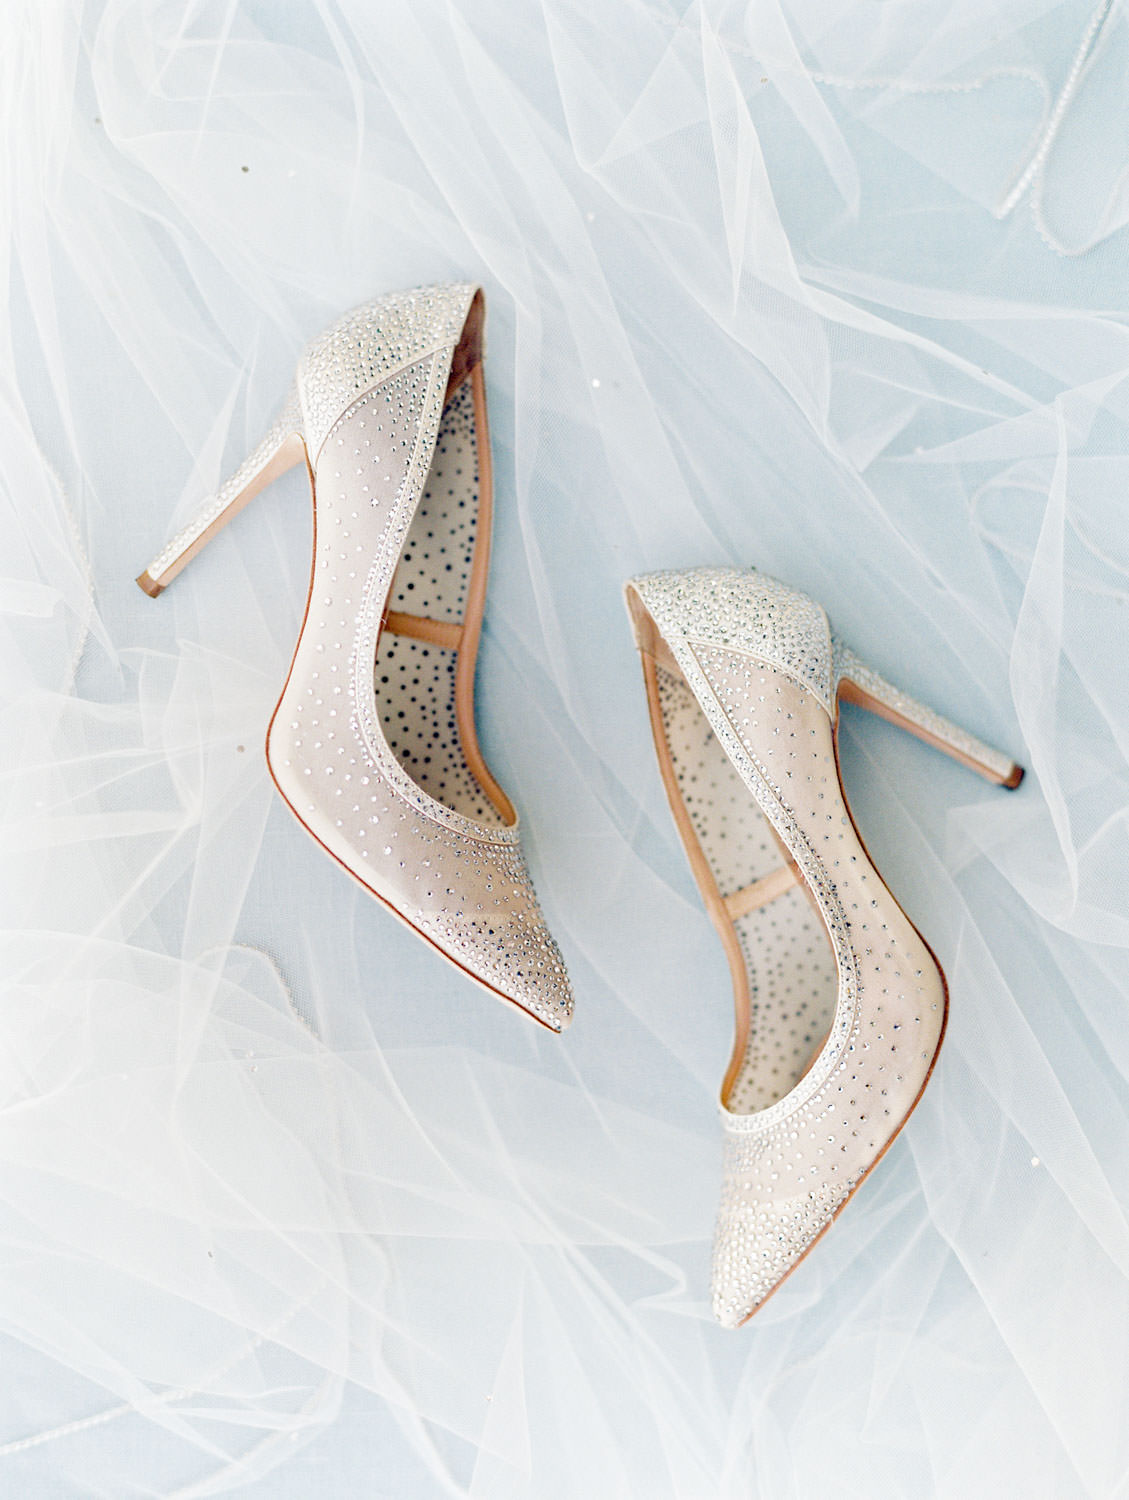 Taupe pointed toe pumps for the bride, styled with her veil, Del Mar Country Club Wedding by Cavin Elizabeth Photography